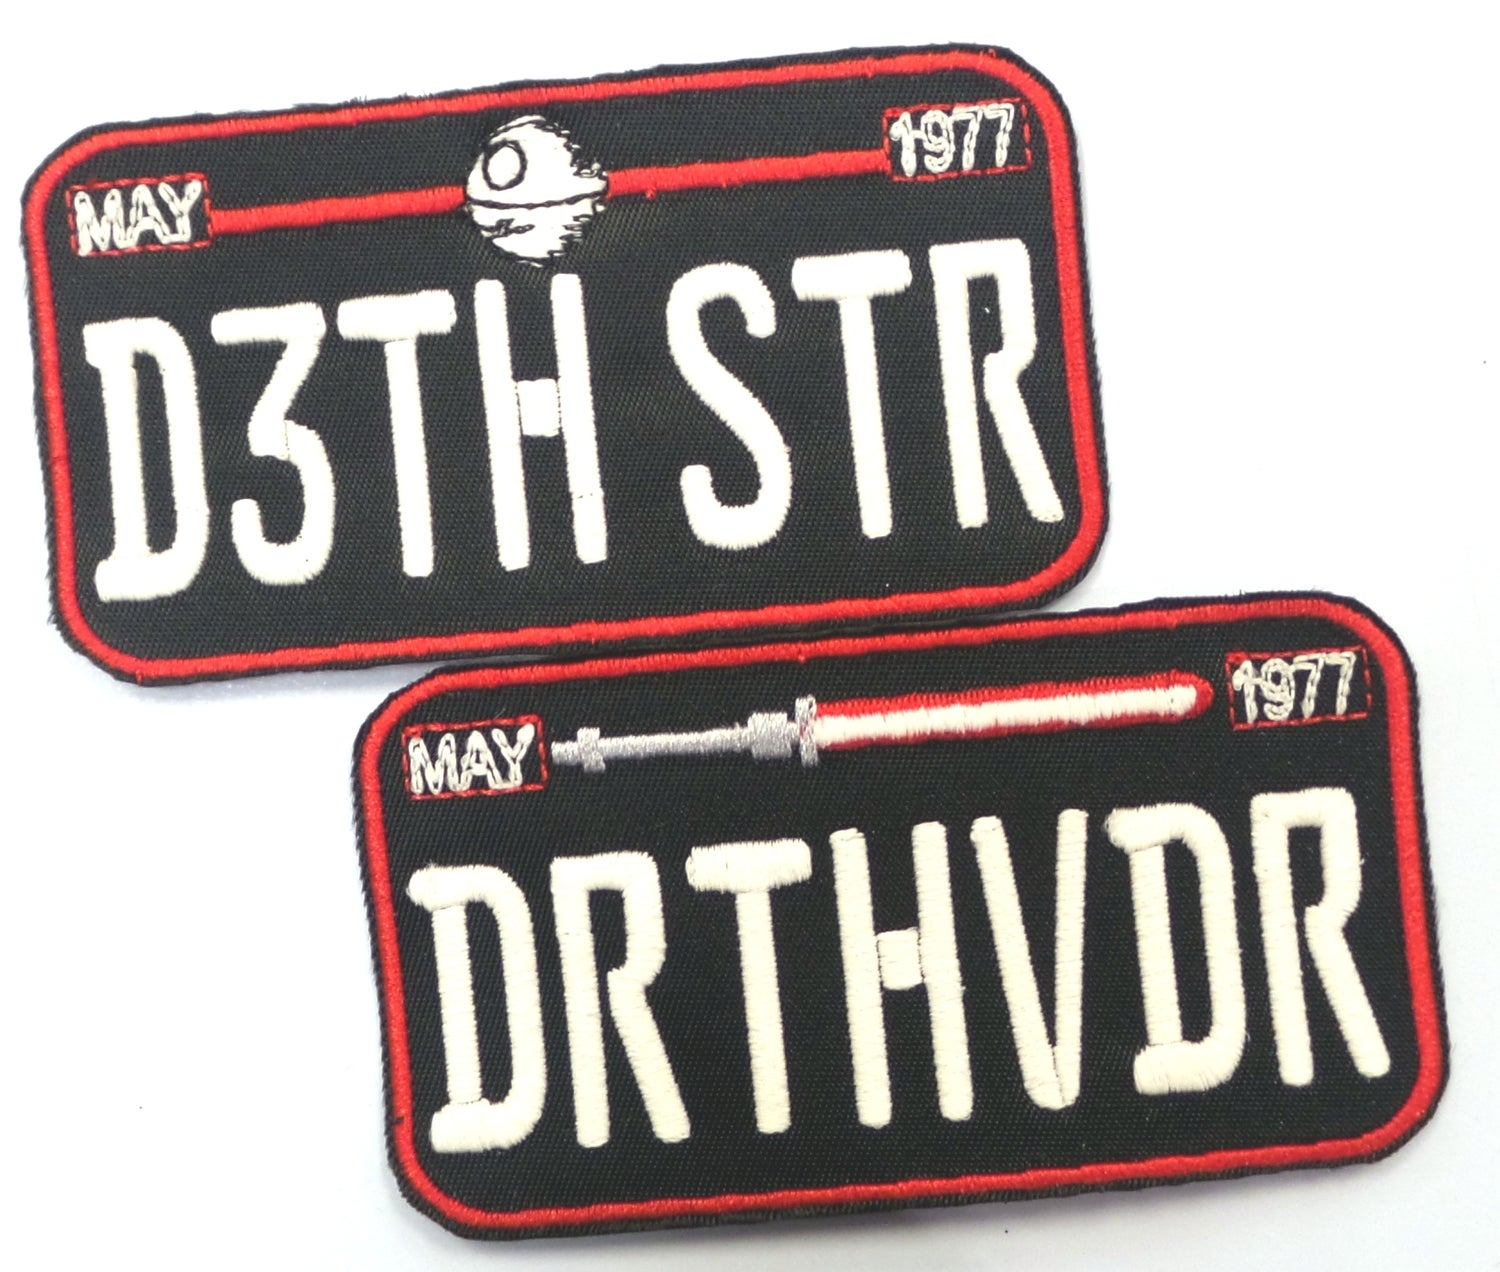 Image of Death Star/Vader Car Plate Patch